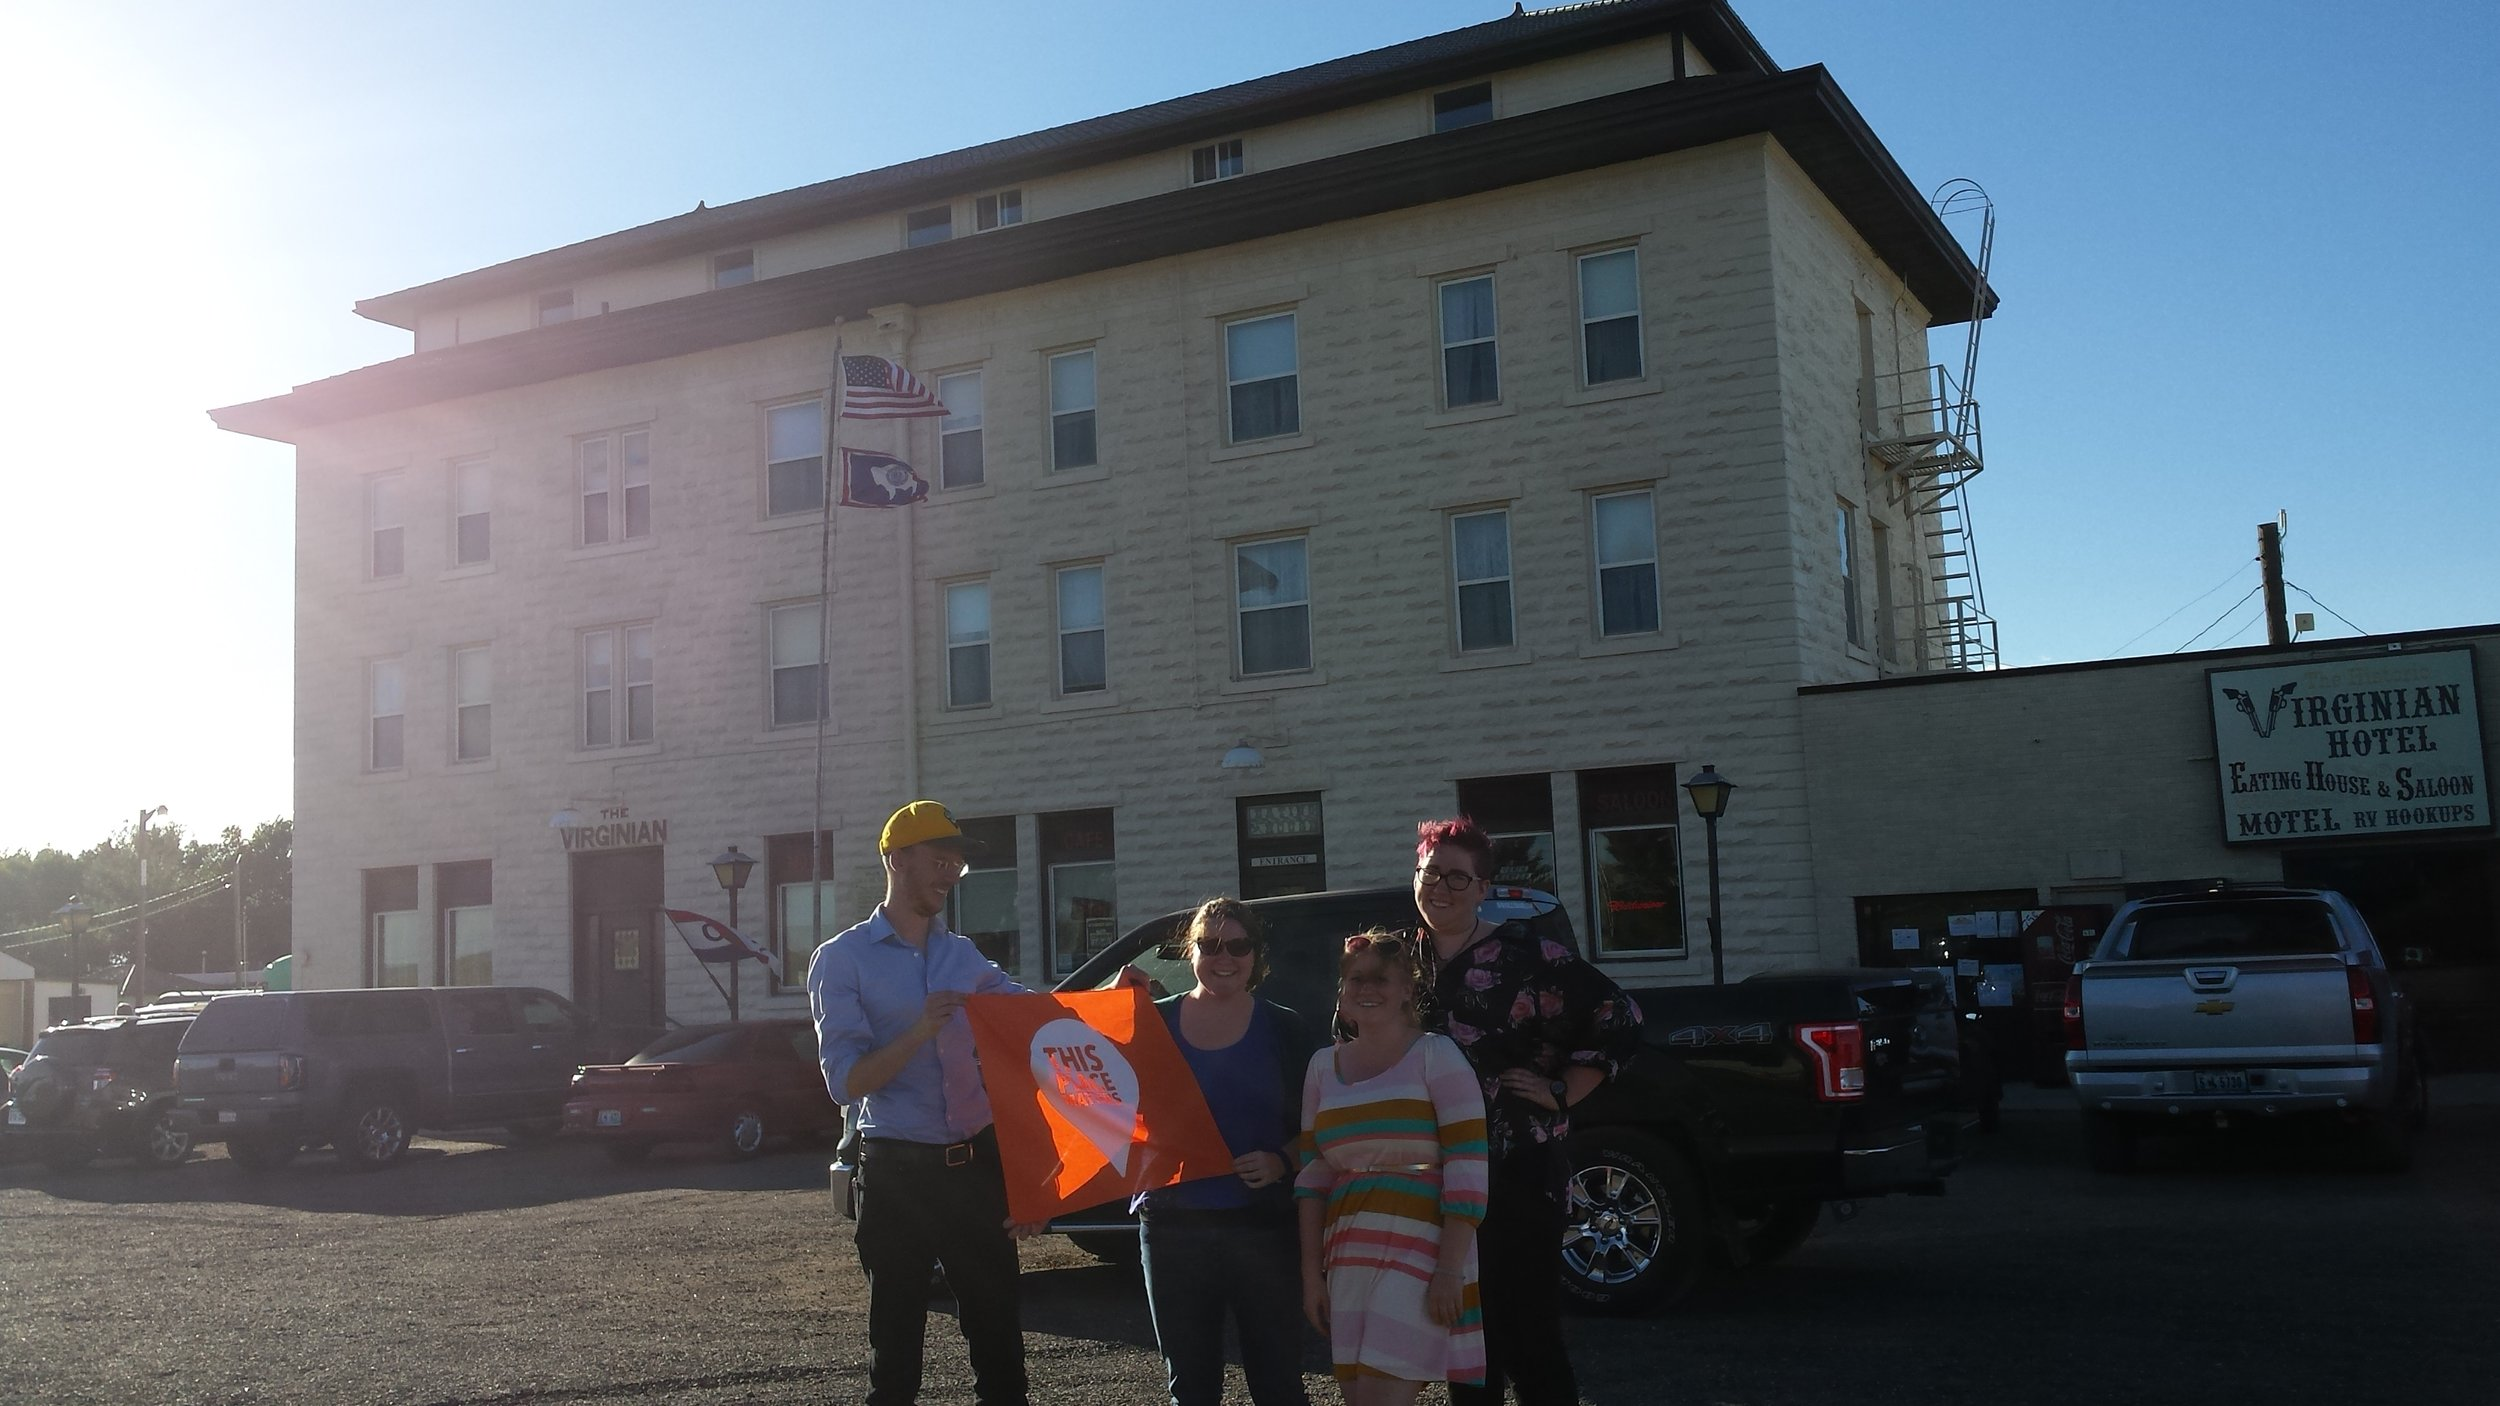 """AHW staff celebrates the Virginian Hotel with a """"This Place Matters"""" banner."""